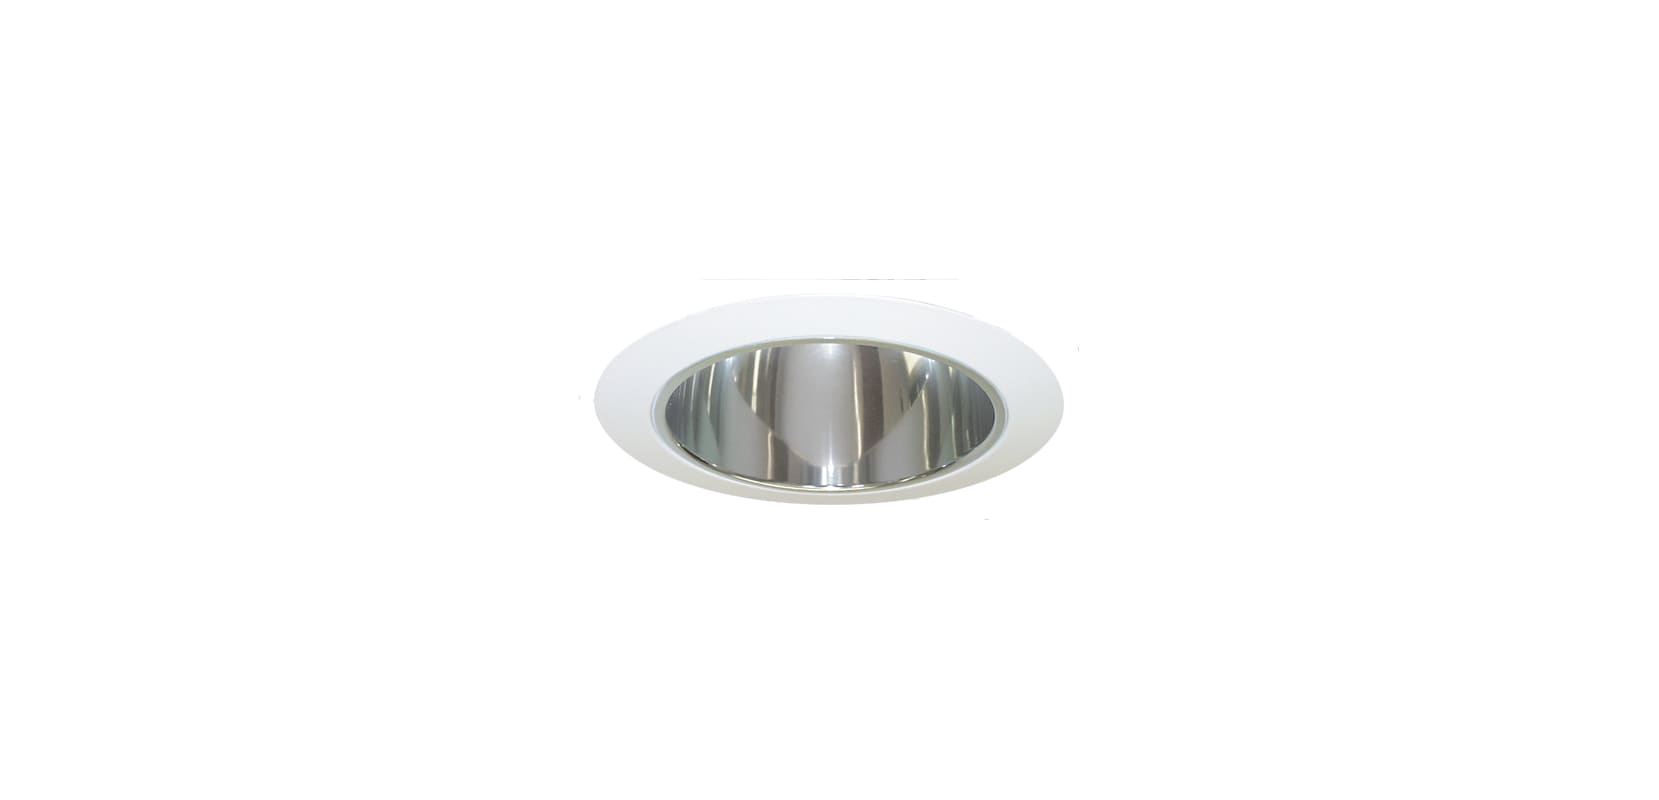 Recessed Lighting Torsion Spring Bracket : Elco els c clear white quot phenolic baffle trim with